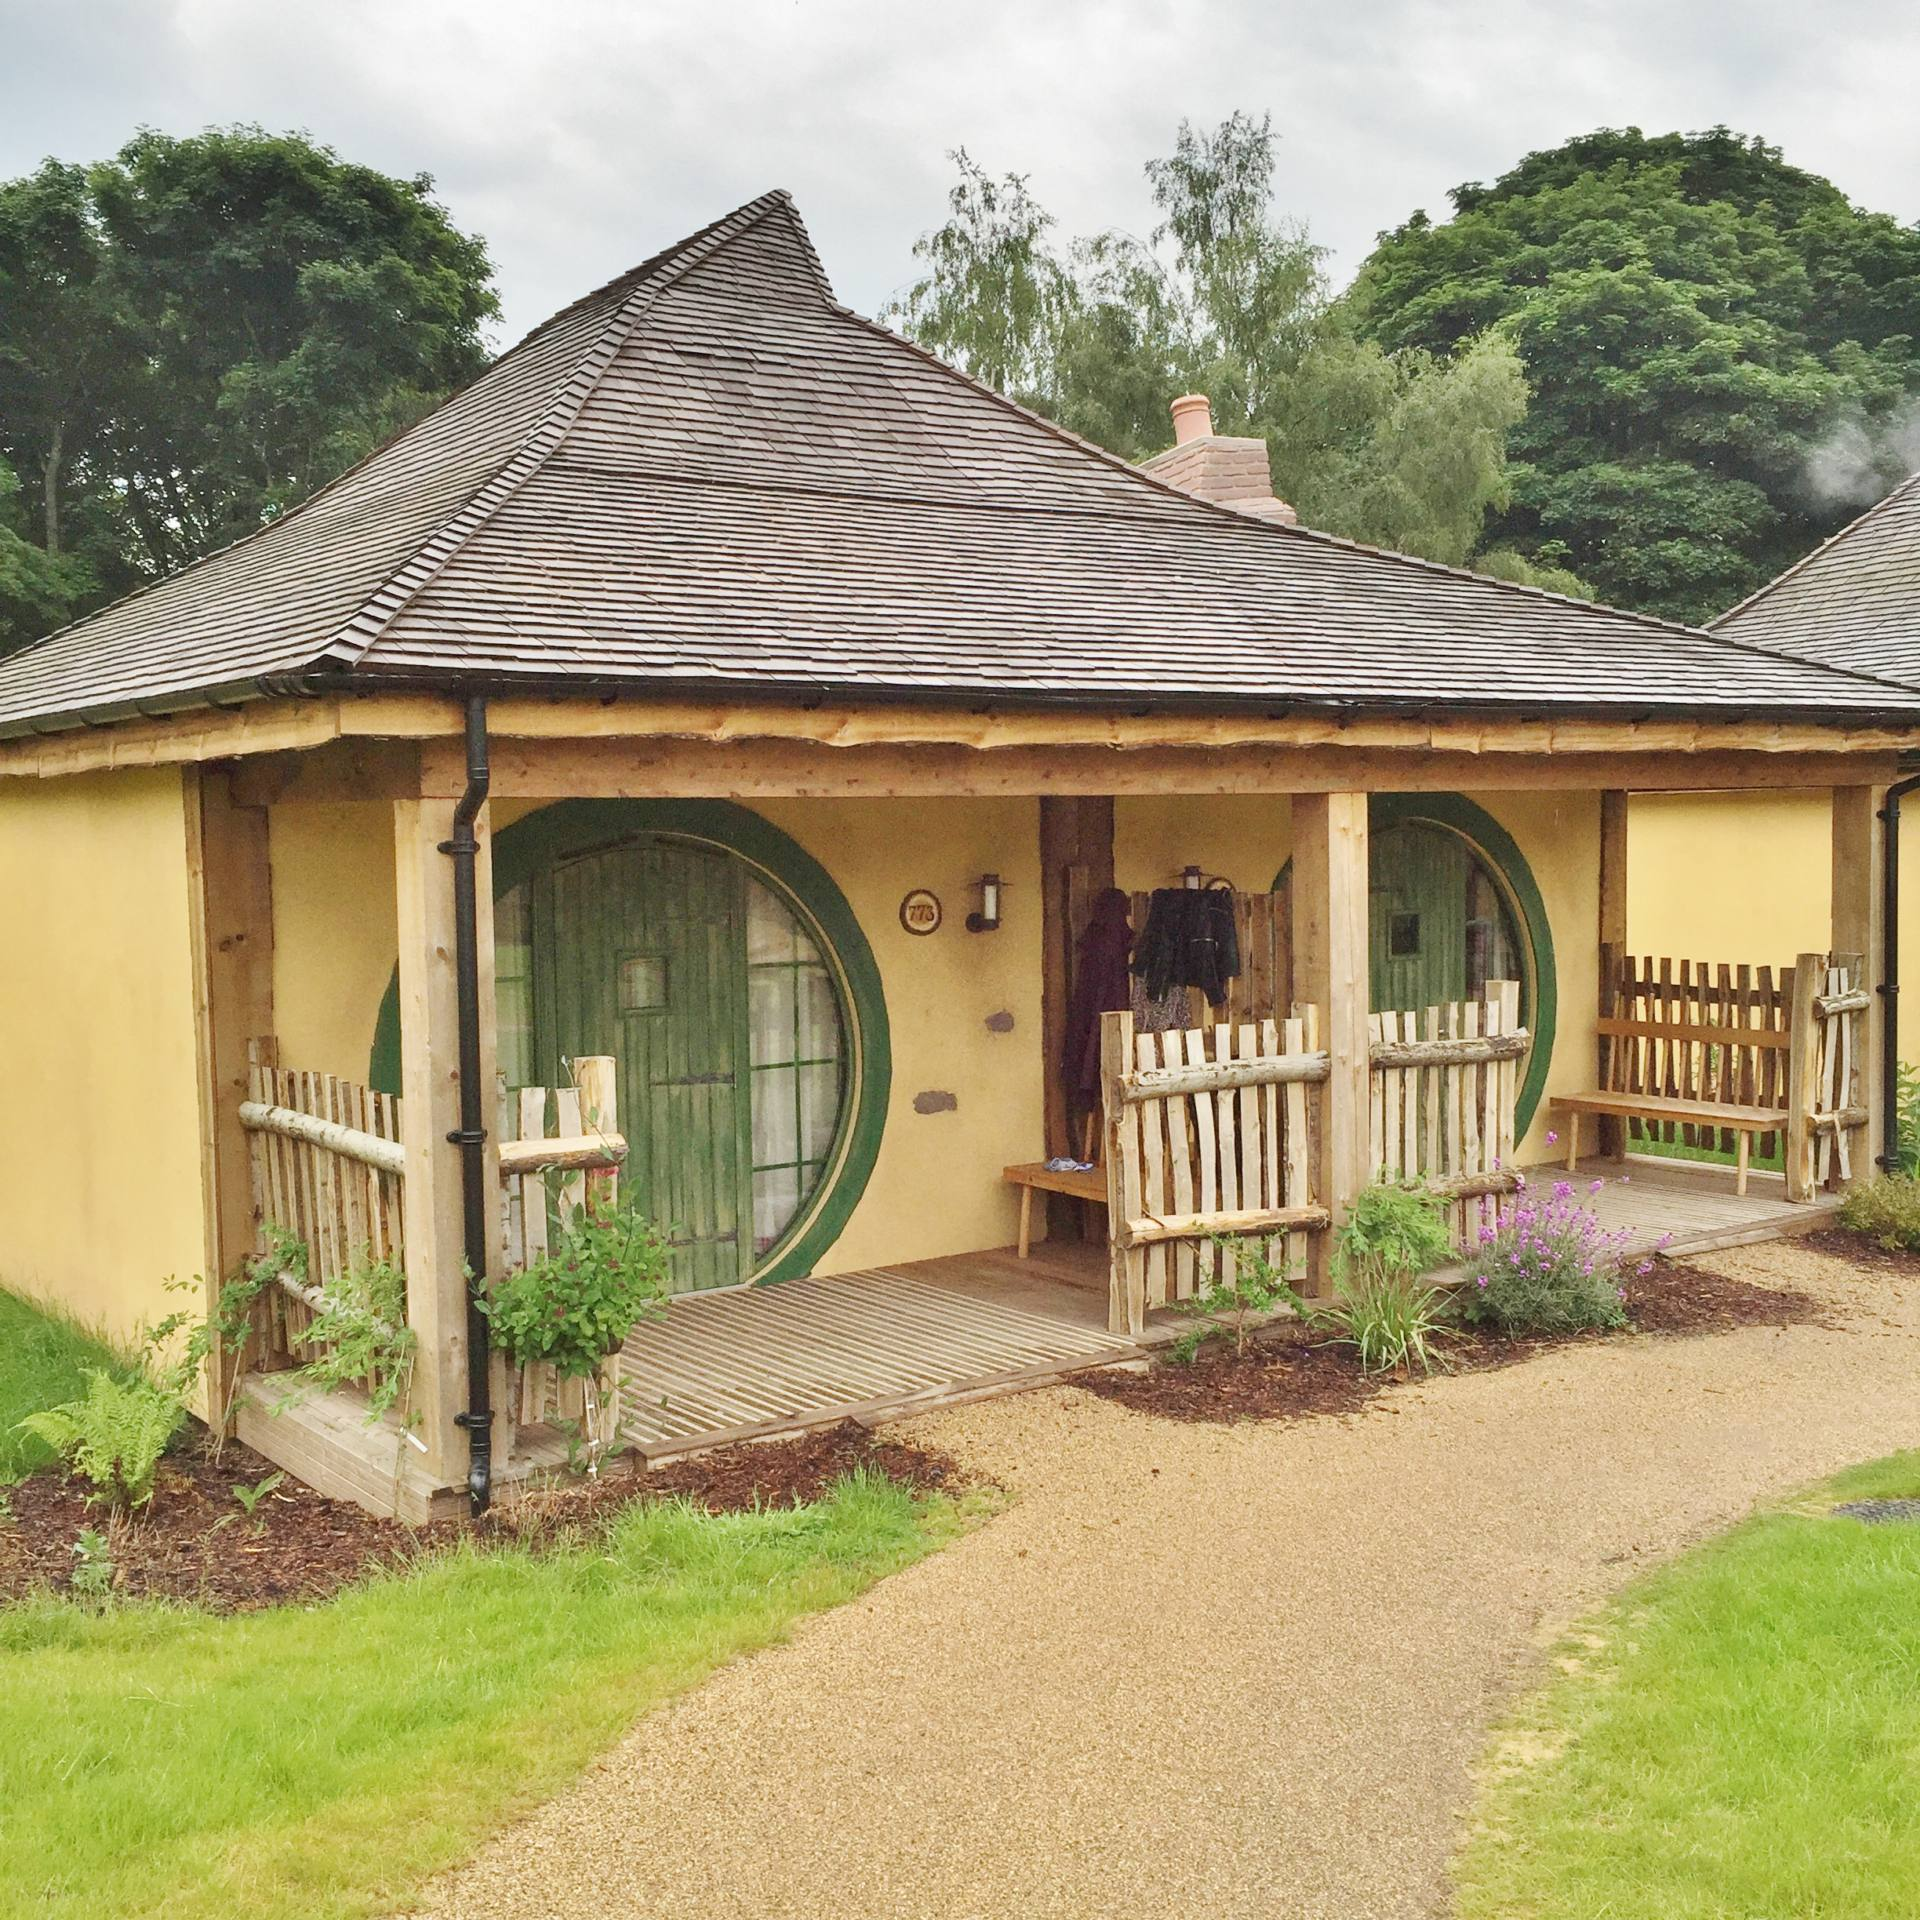 Emma Victoria Stokes Enchanted Lodges Alton Towers The Shire House